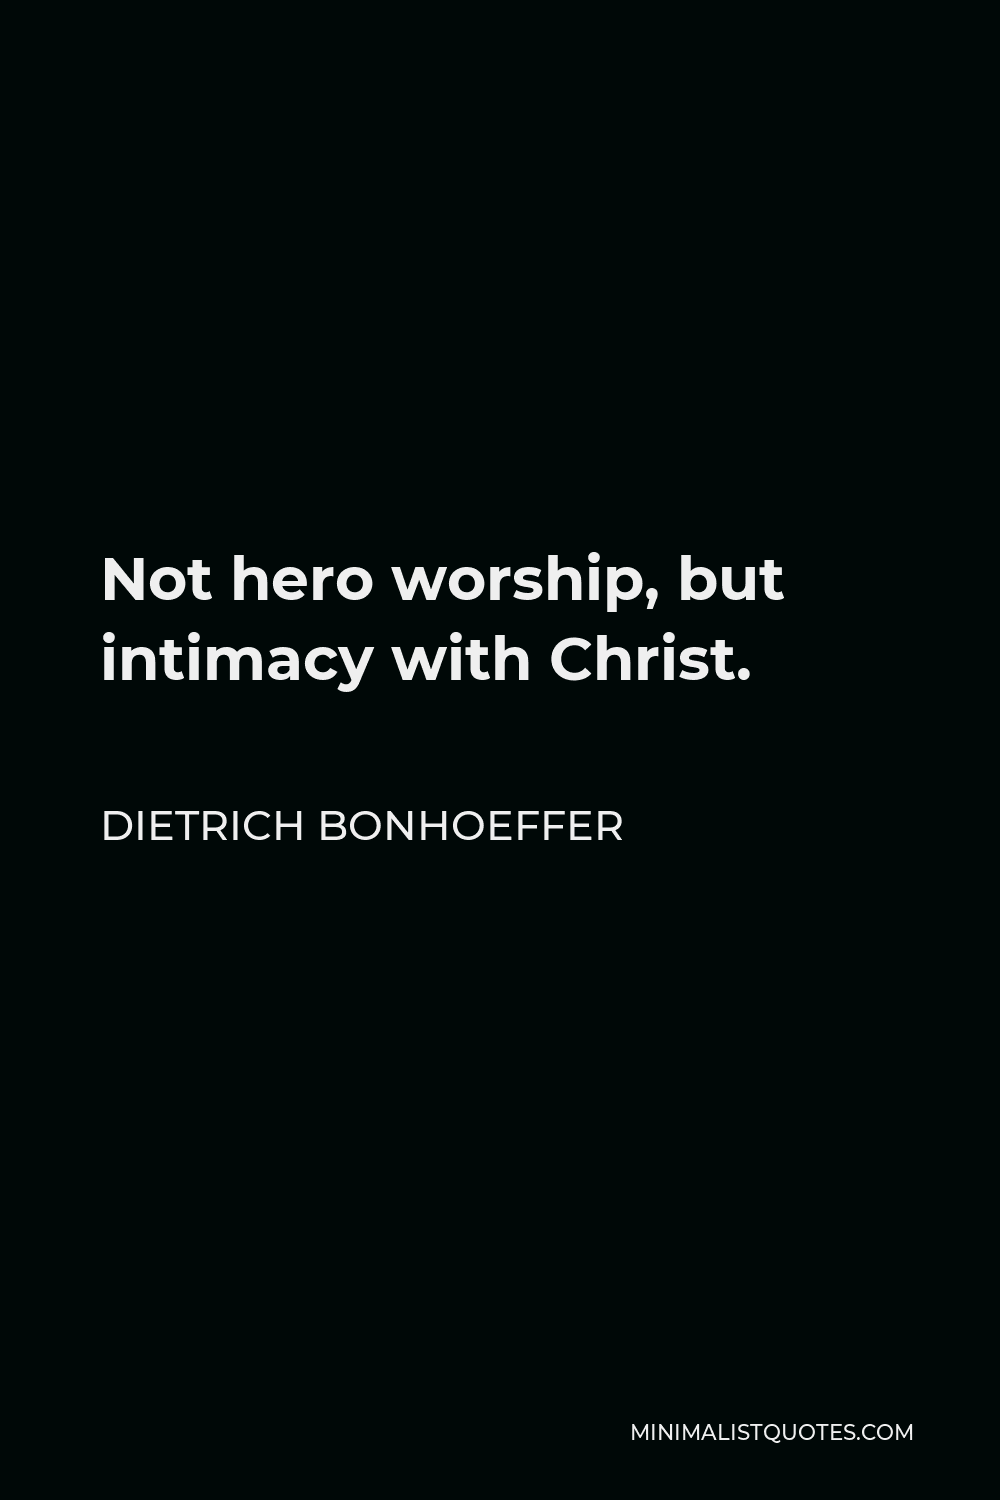 Dietrich Bonhoeffer Quote - Not hero worship, but intimacy with Christ.